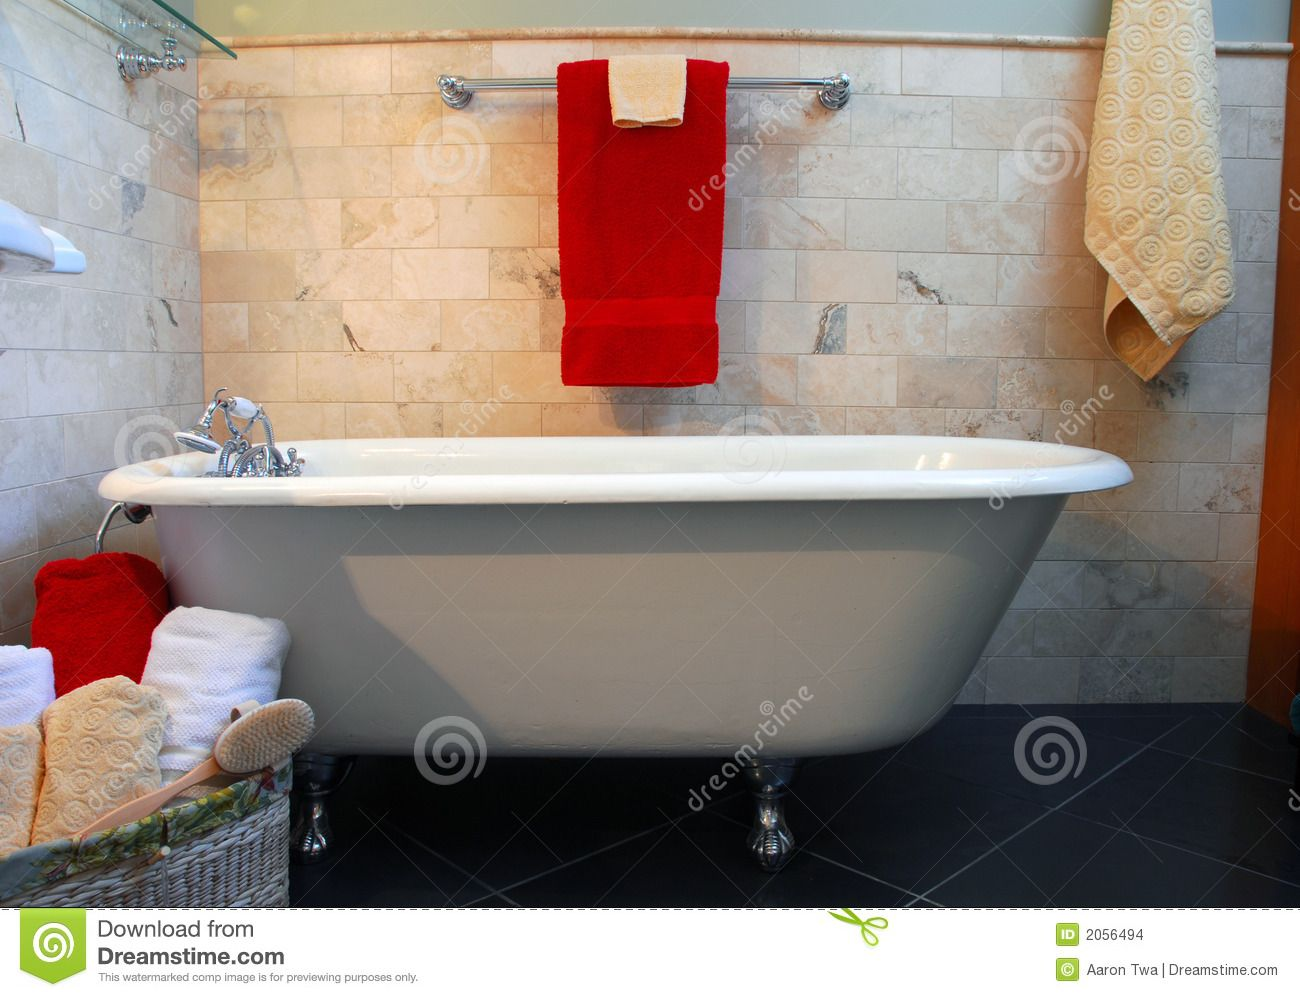 images of spa tubs in bathrooms | Download Wallpaper Clawfoot tub ...